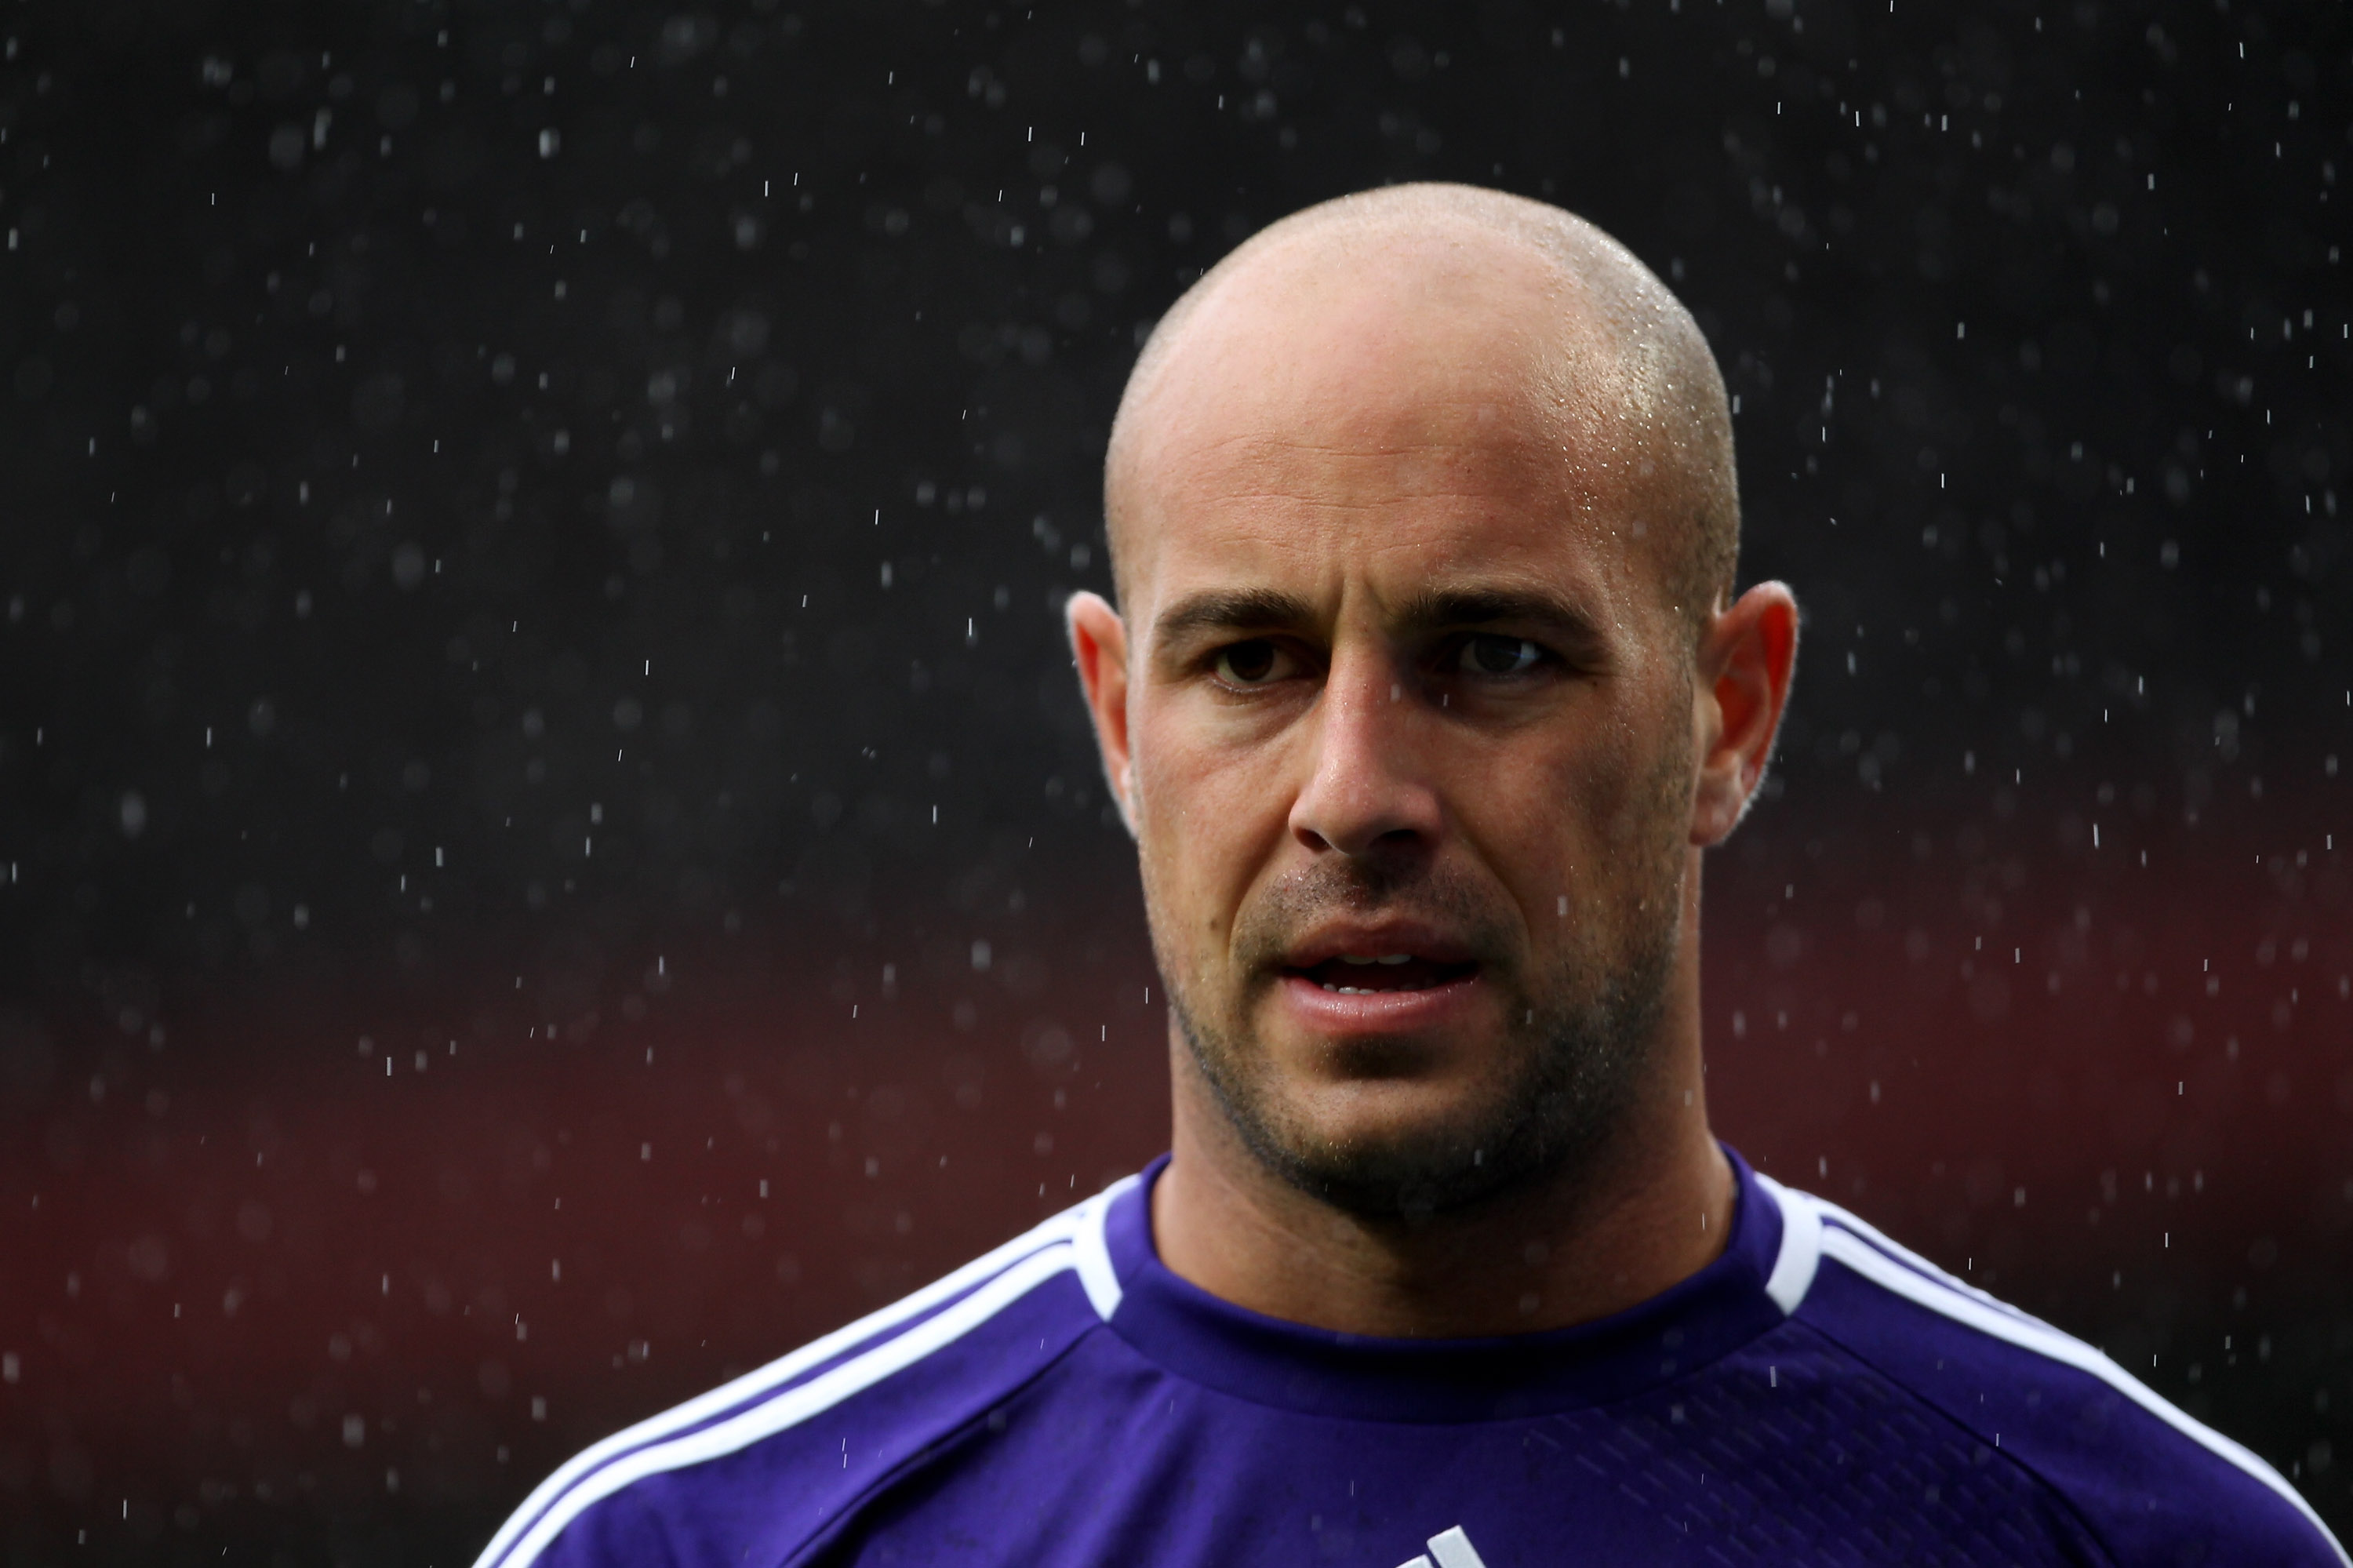 MANCHESTER, ENGLAND - SEPTEMBER 19:   Pepe Reina of Liverpool looks on during the Barclays Premier League match between Manchester United and Liverpool at Old Trafford on September 19, 2010 in Manchester, England. (Photo by Alex Livesey/Getty Images)